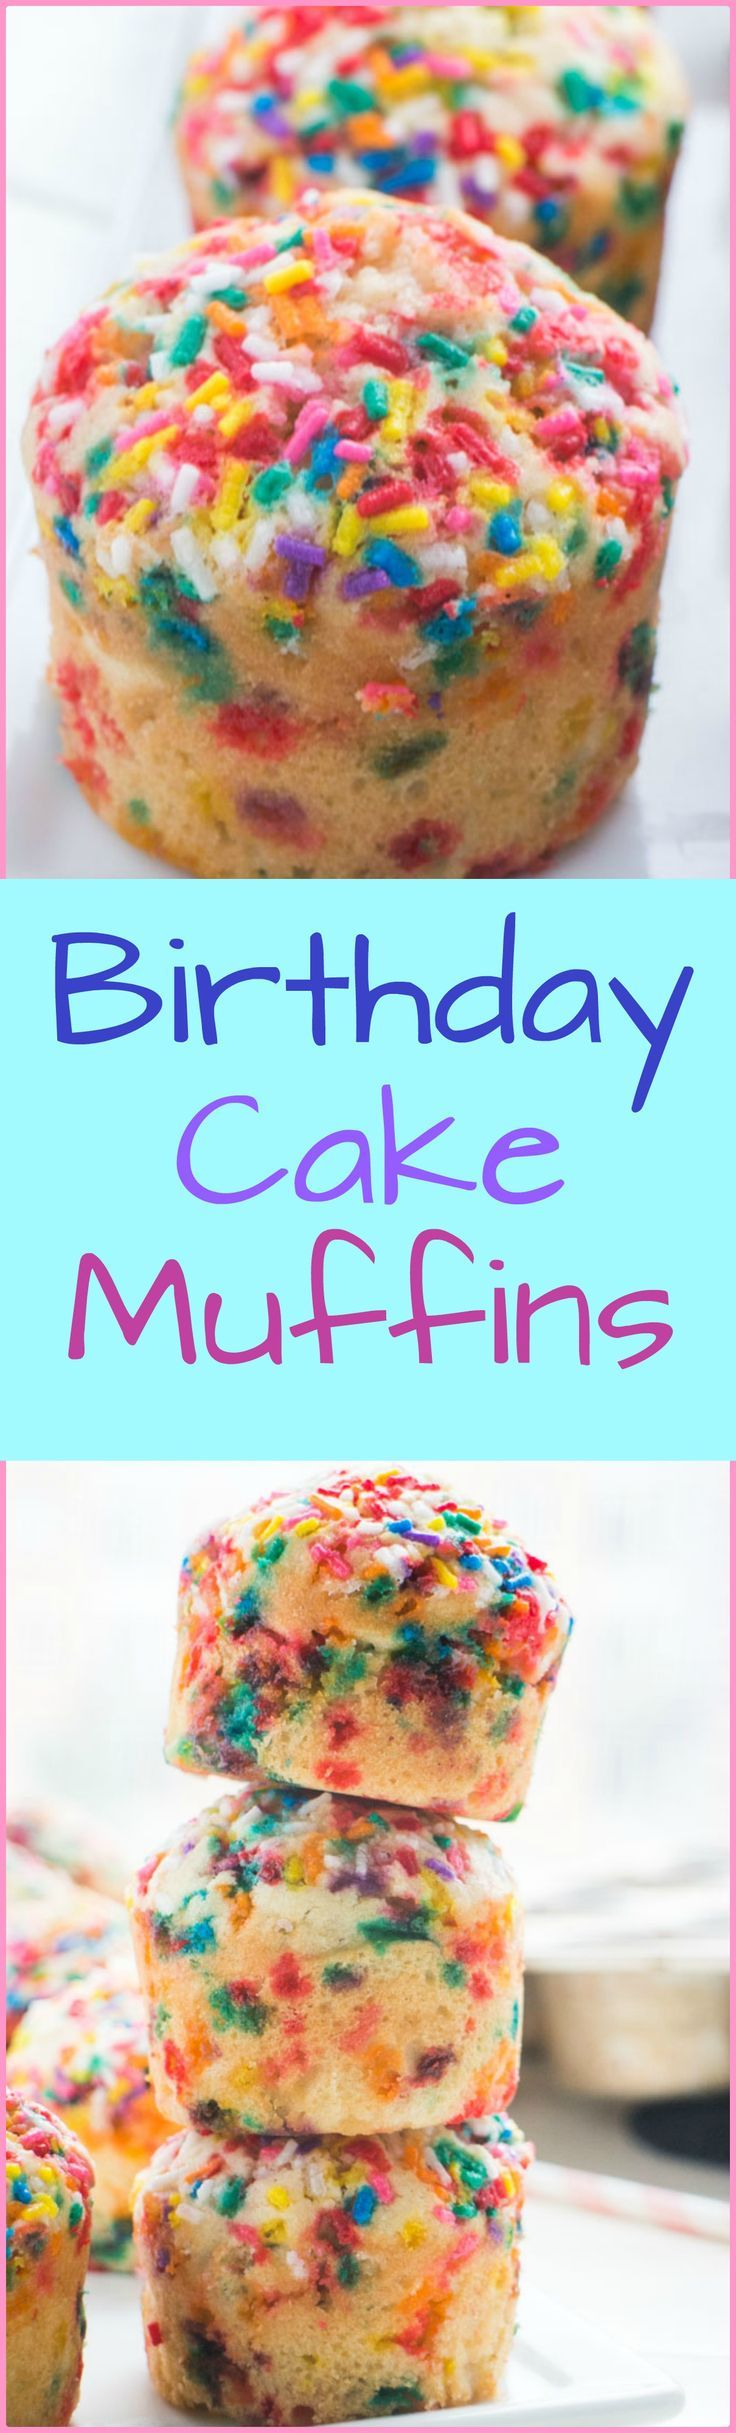 Fluffy Birthday Cake Muffins that taste just like cake! Recipe makes 12 muffins.